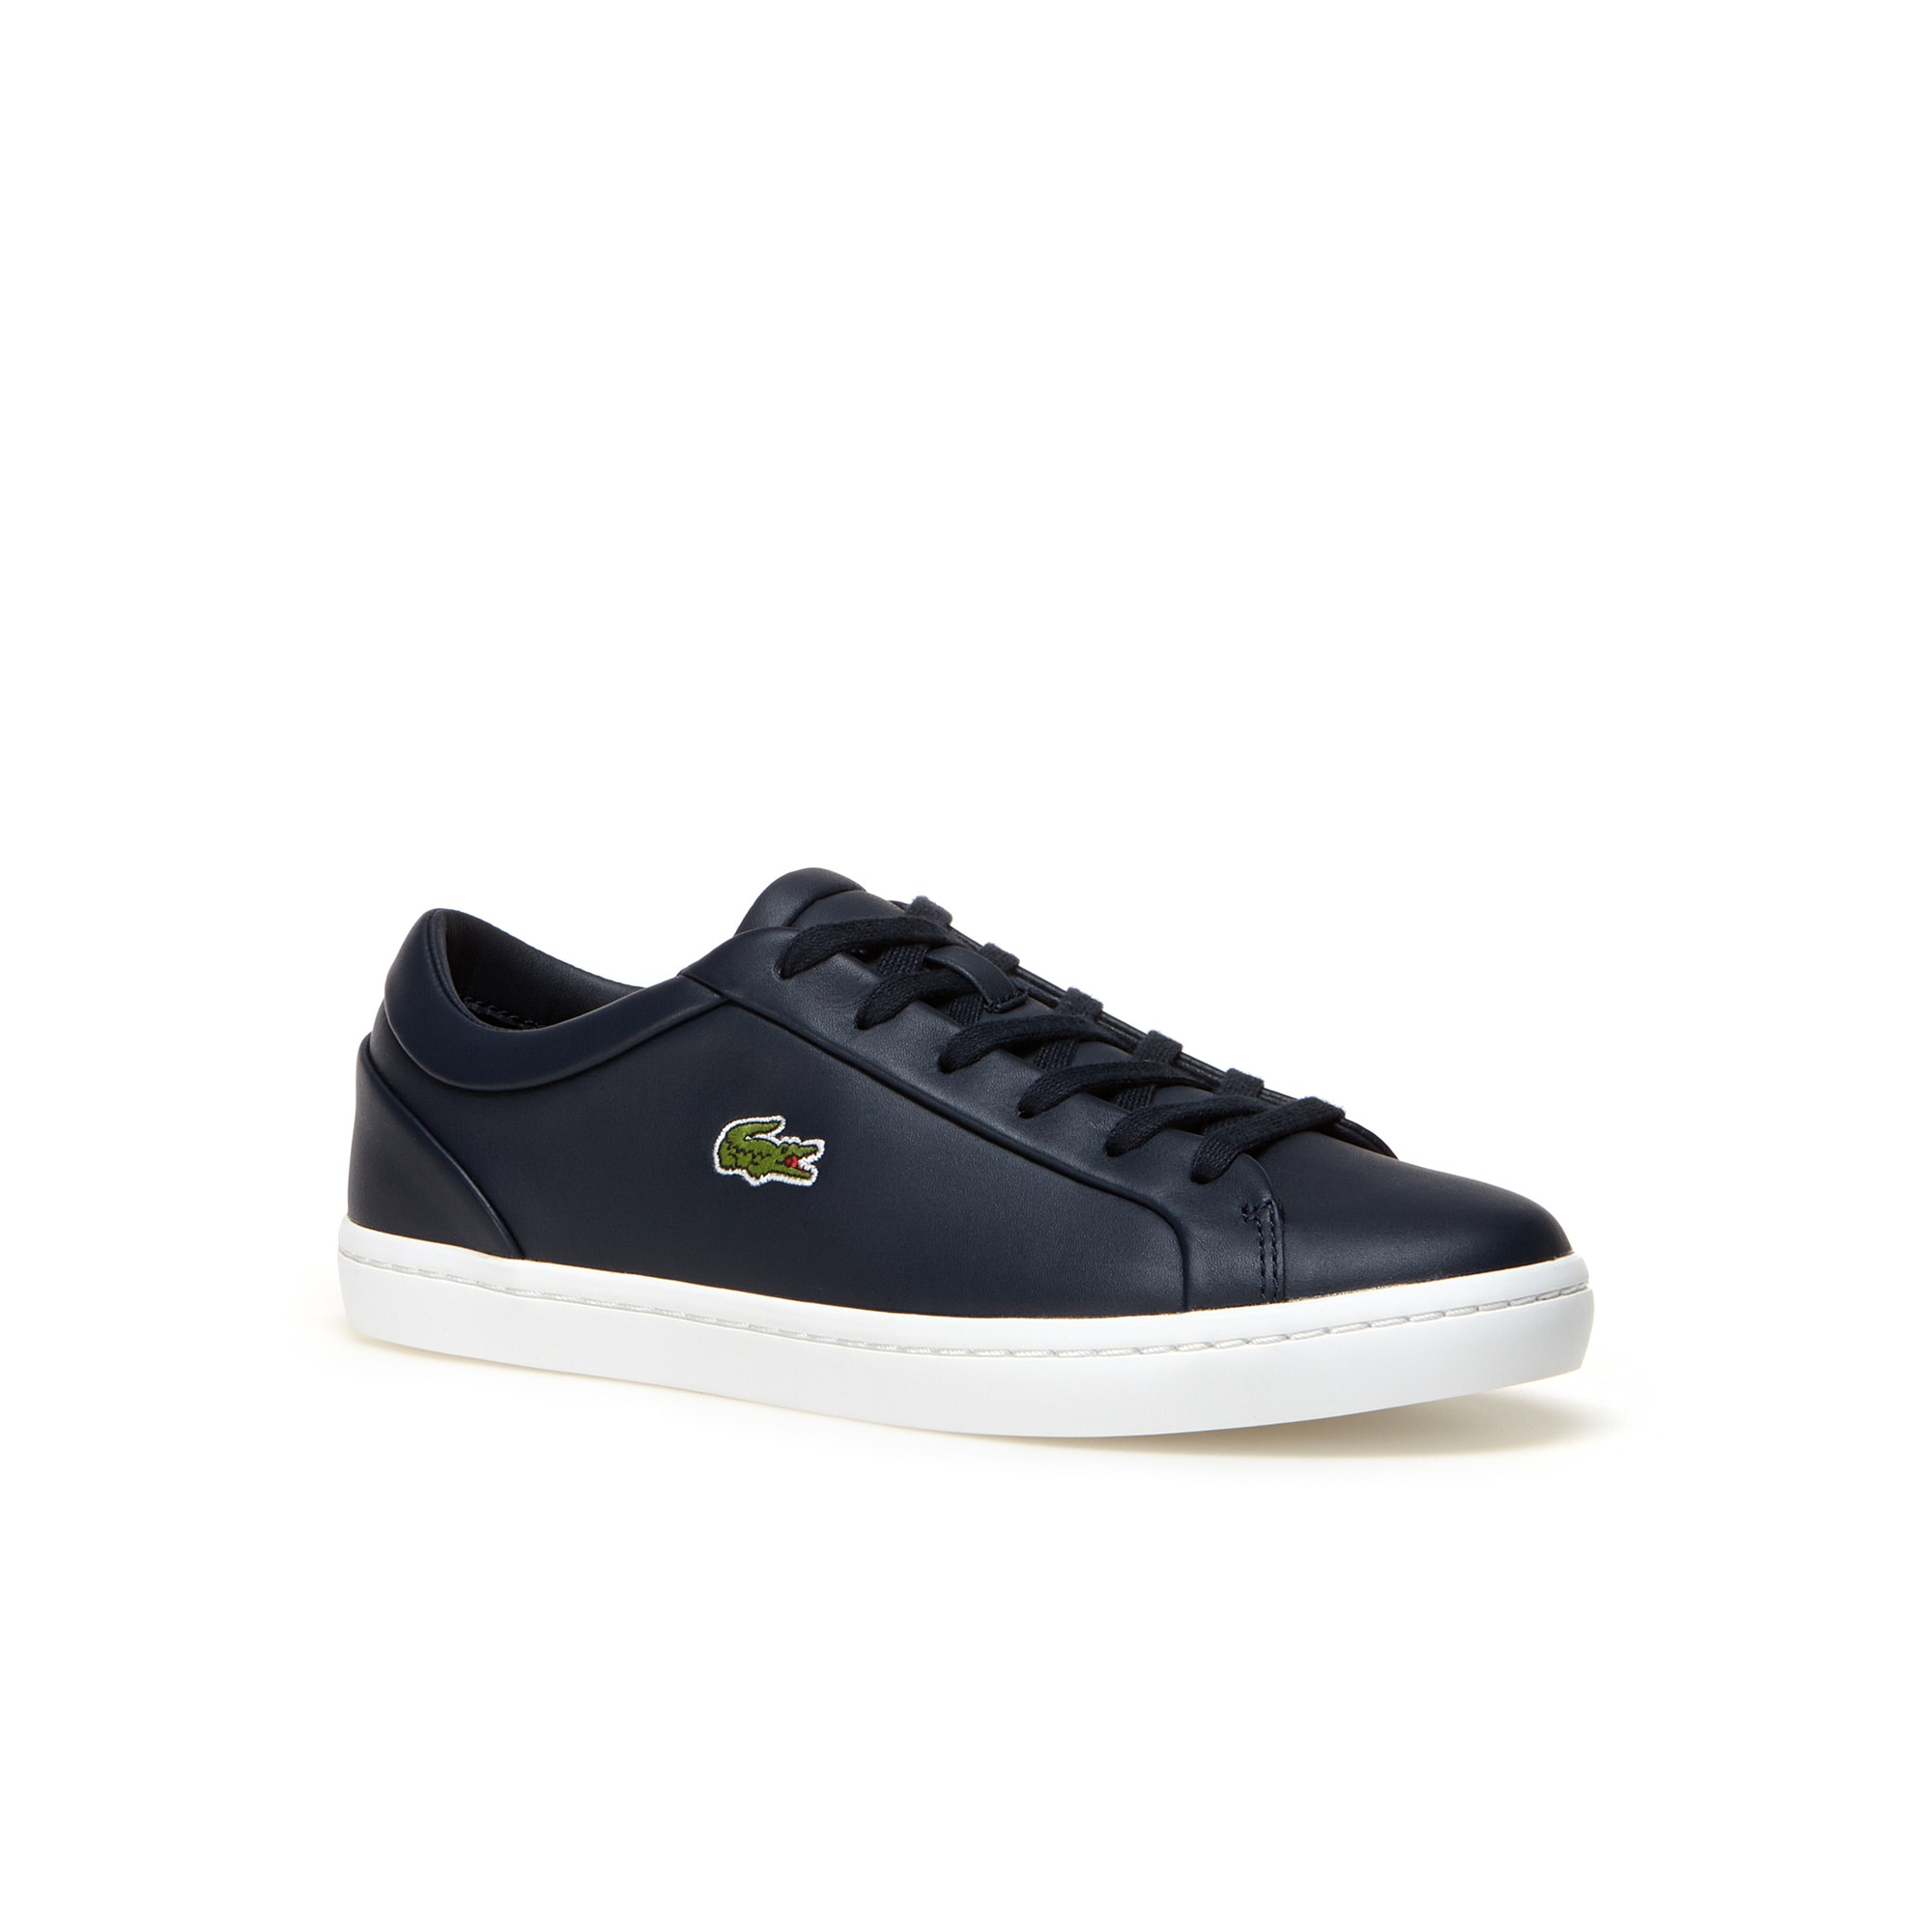 Lacoste Leather Tennis Shoes